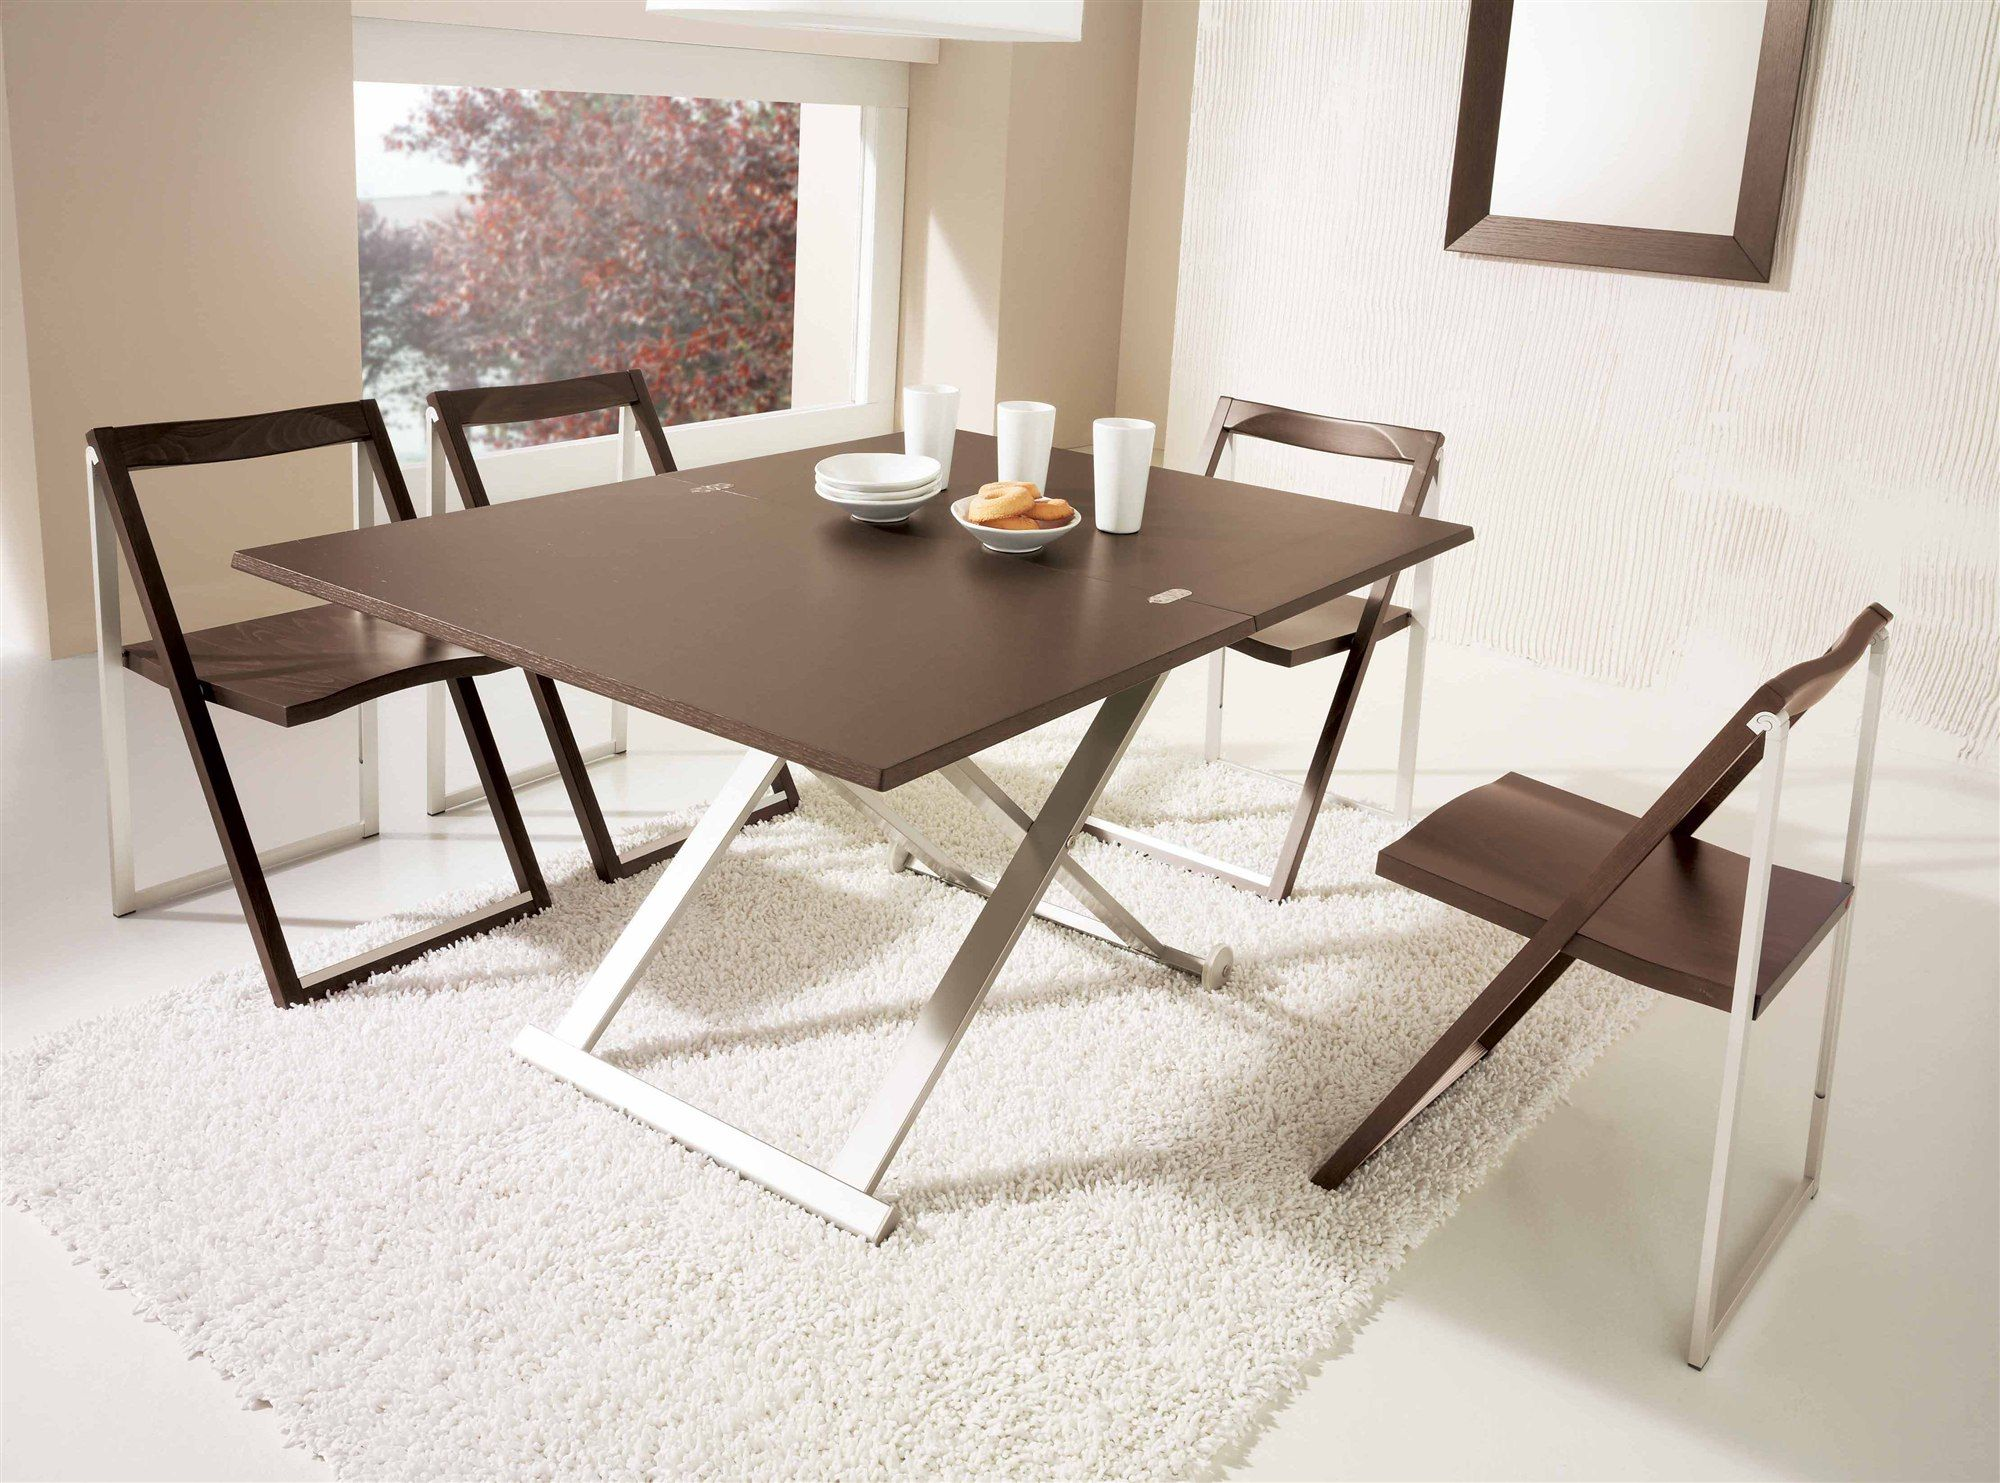 Beautiful This Is Especially Beneficial If You Are Moving To A New Apartment Since  You Donu0027t Have To Need A Lot Of People To Move Your Kitchen Table.